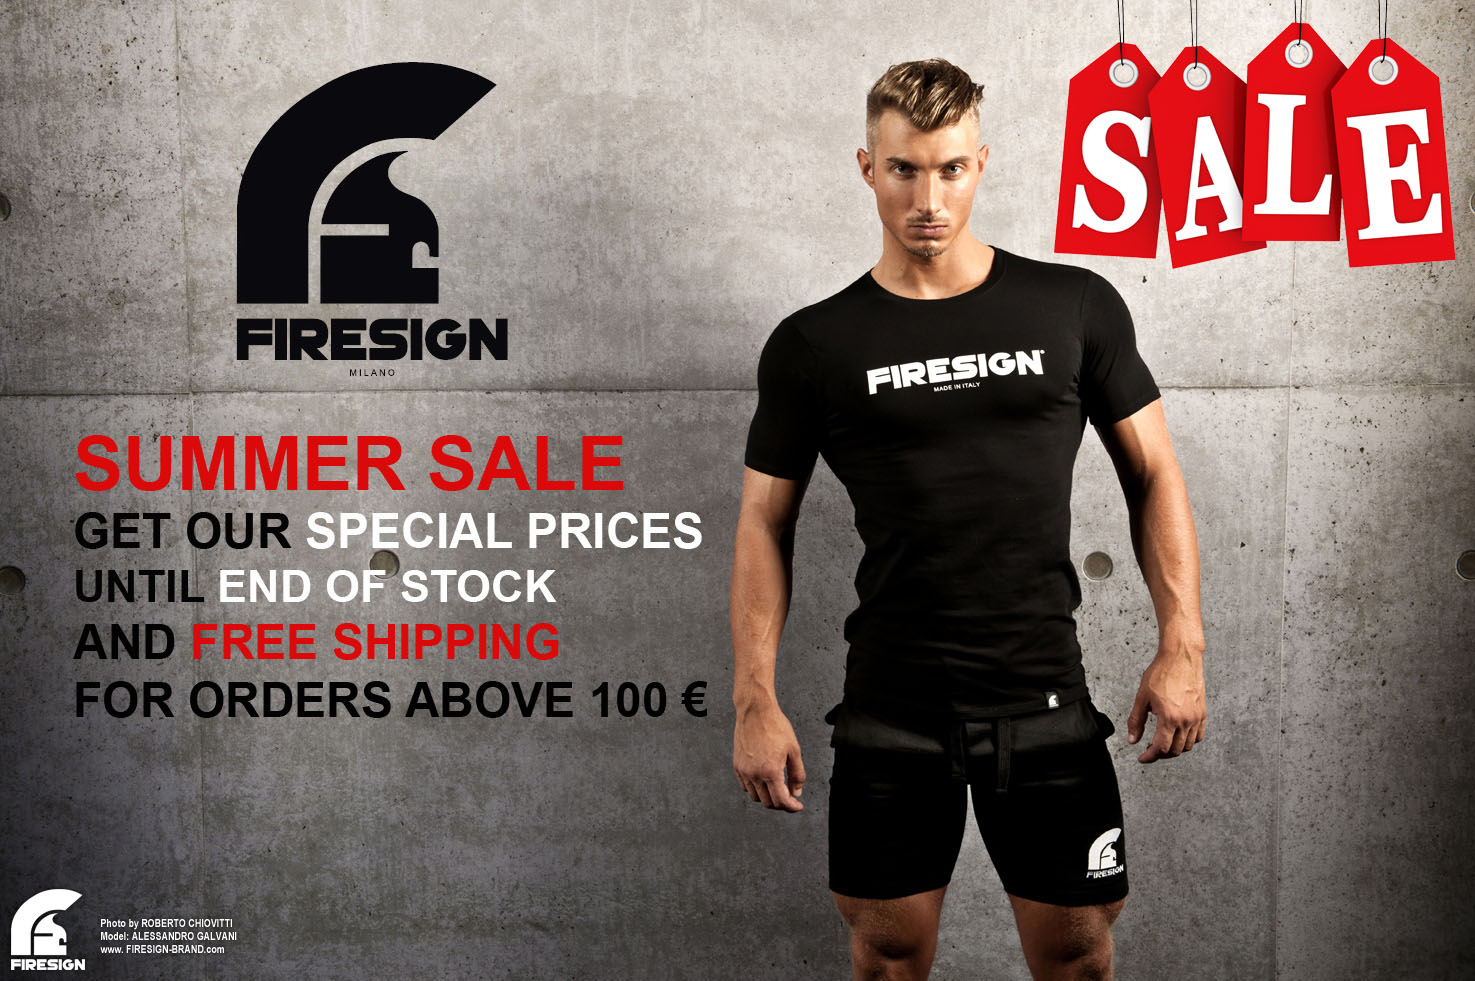 Firesign Winter Sale